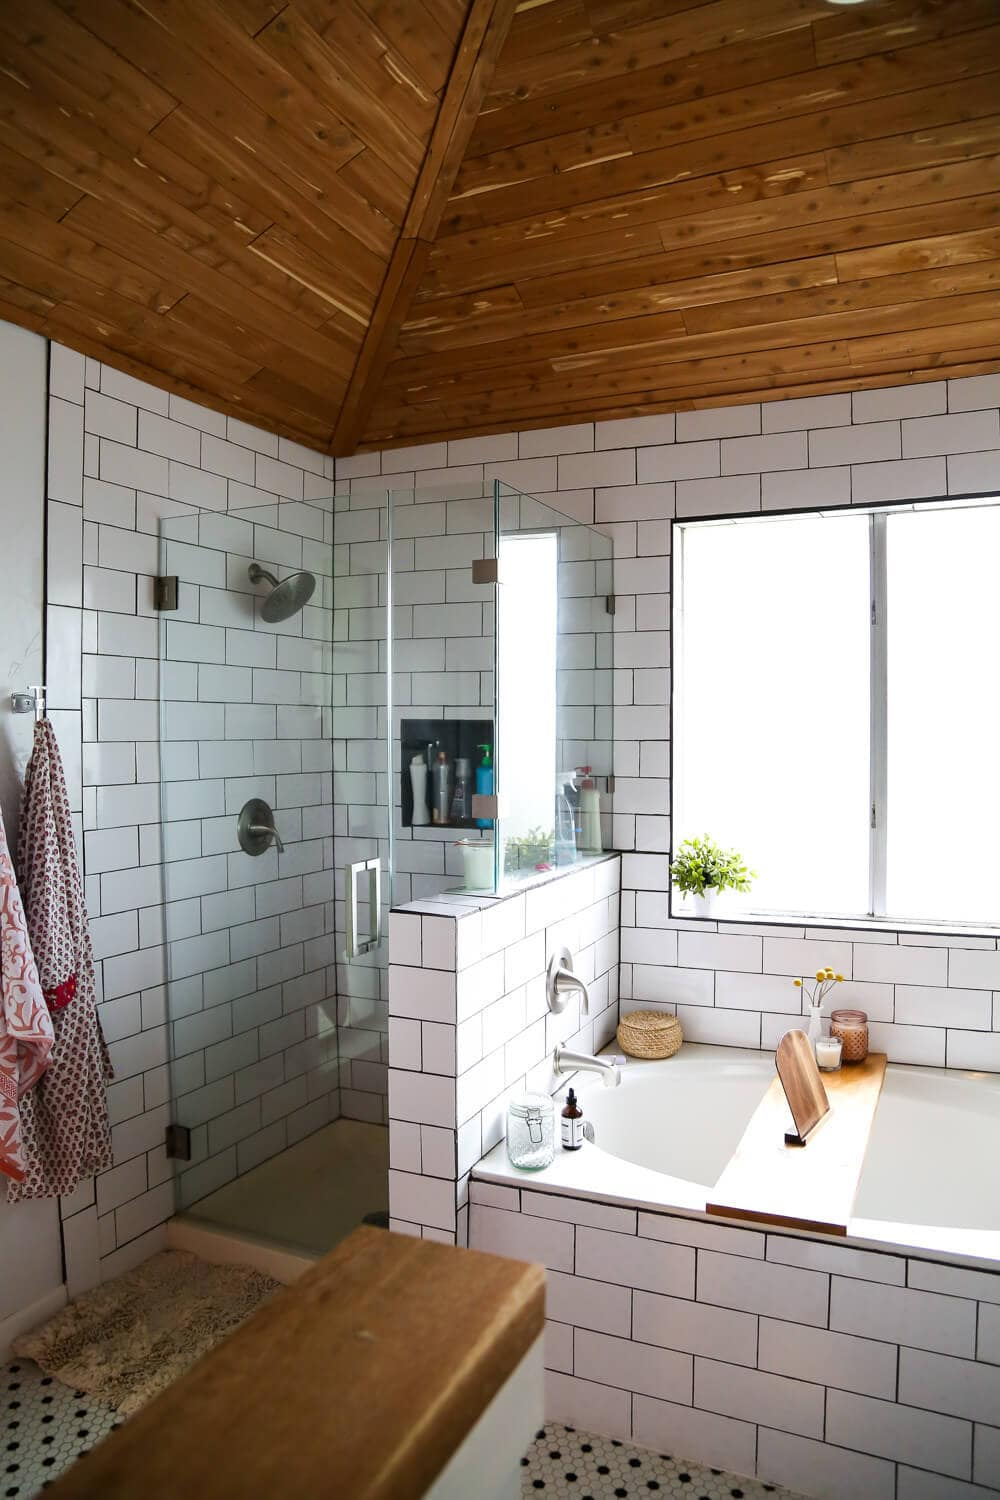 Bathroom Remodels On A Budget our diy budget bathroom renovation // love & renovations